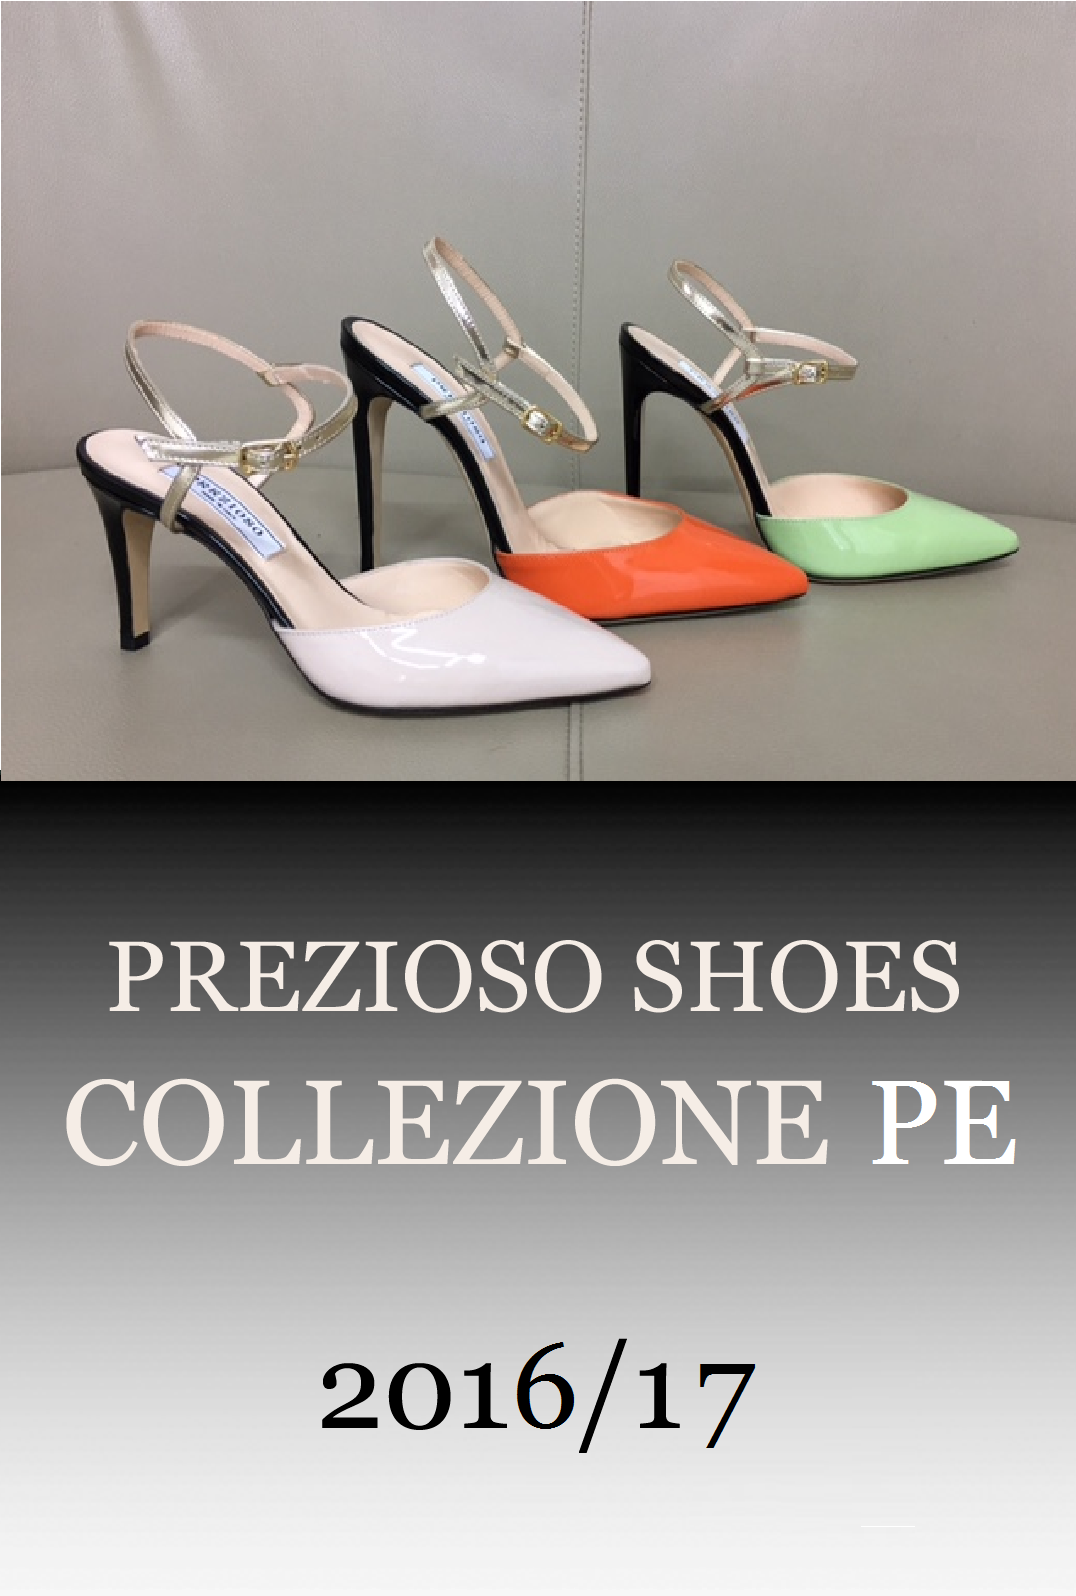 PREZIOSO SHOES